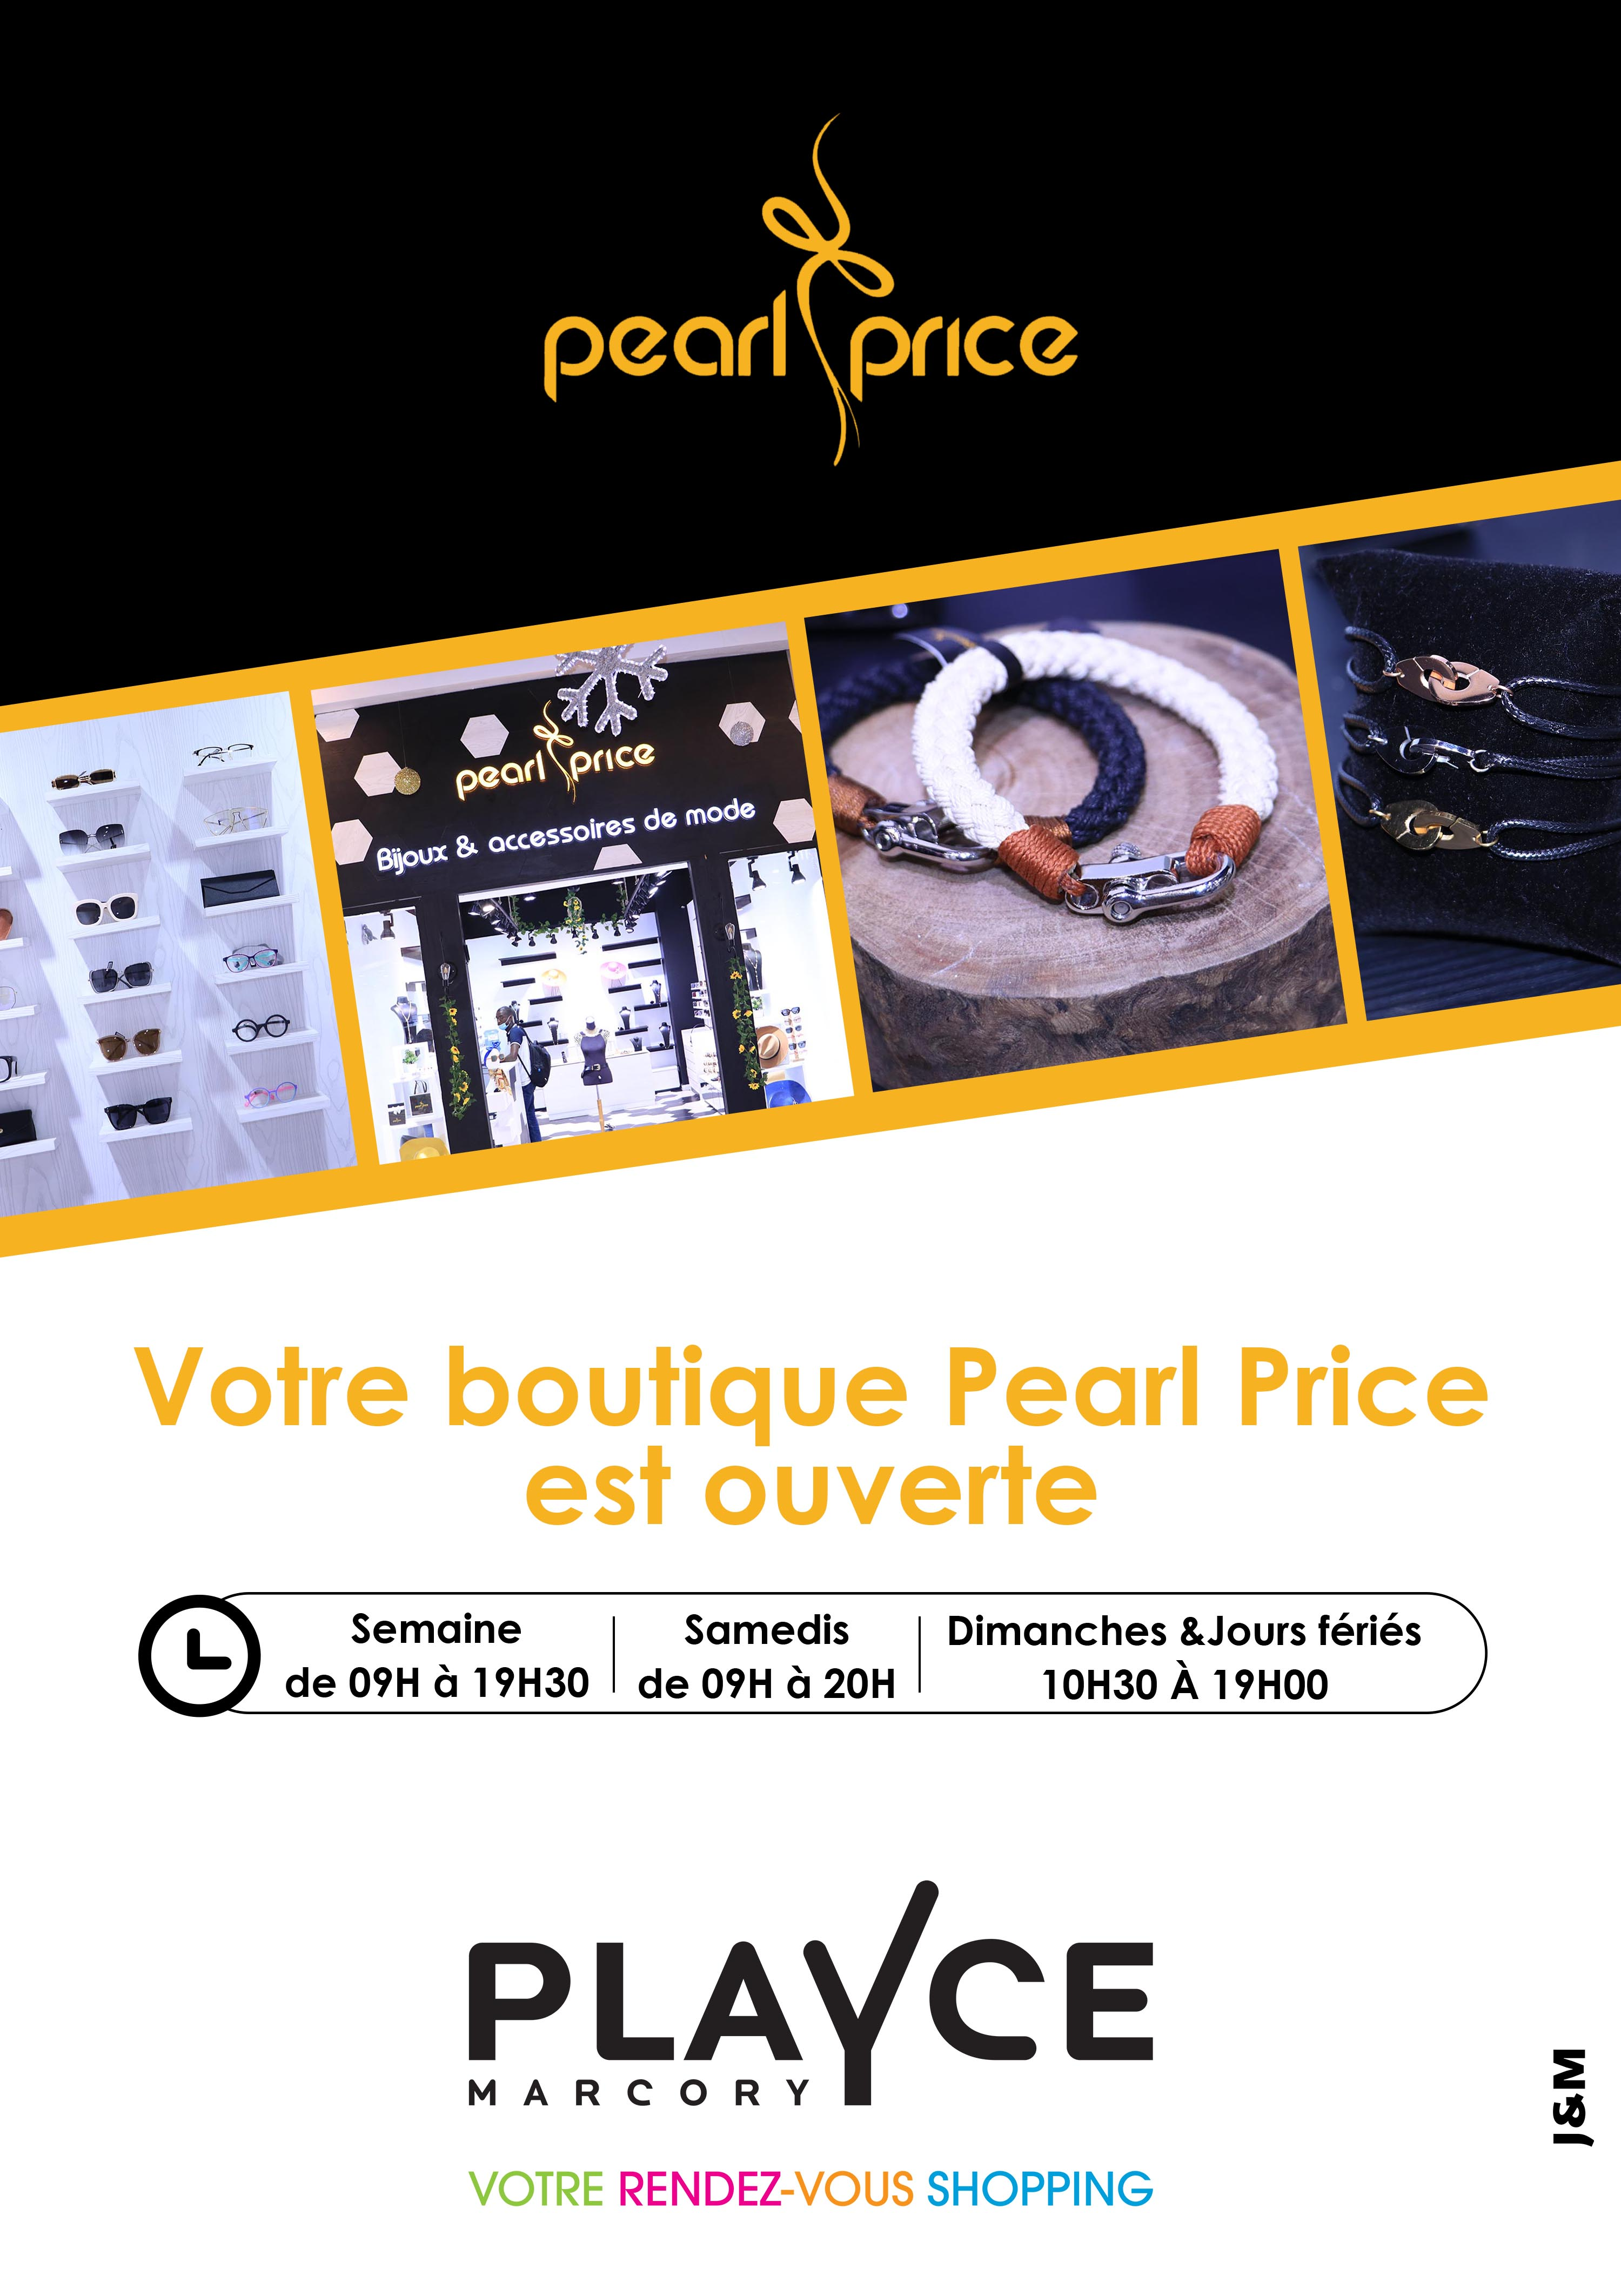 Pearl Price est ouvert